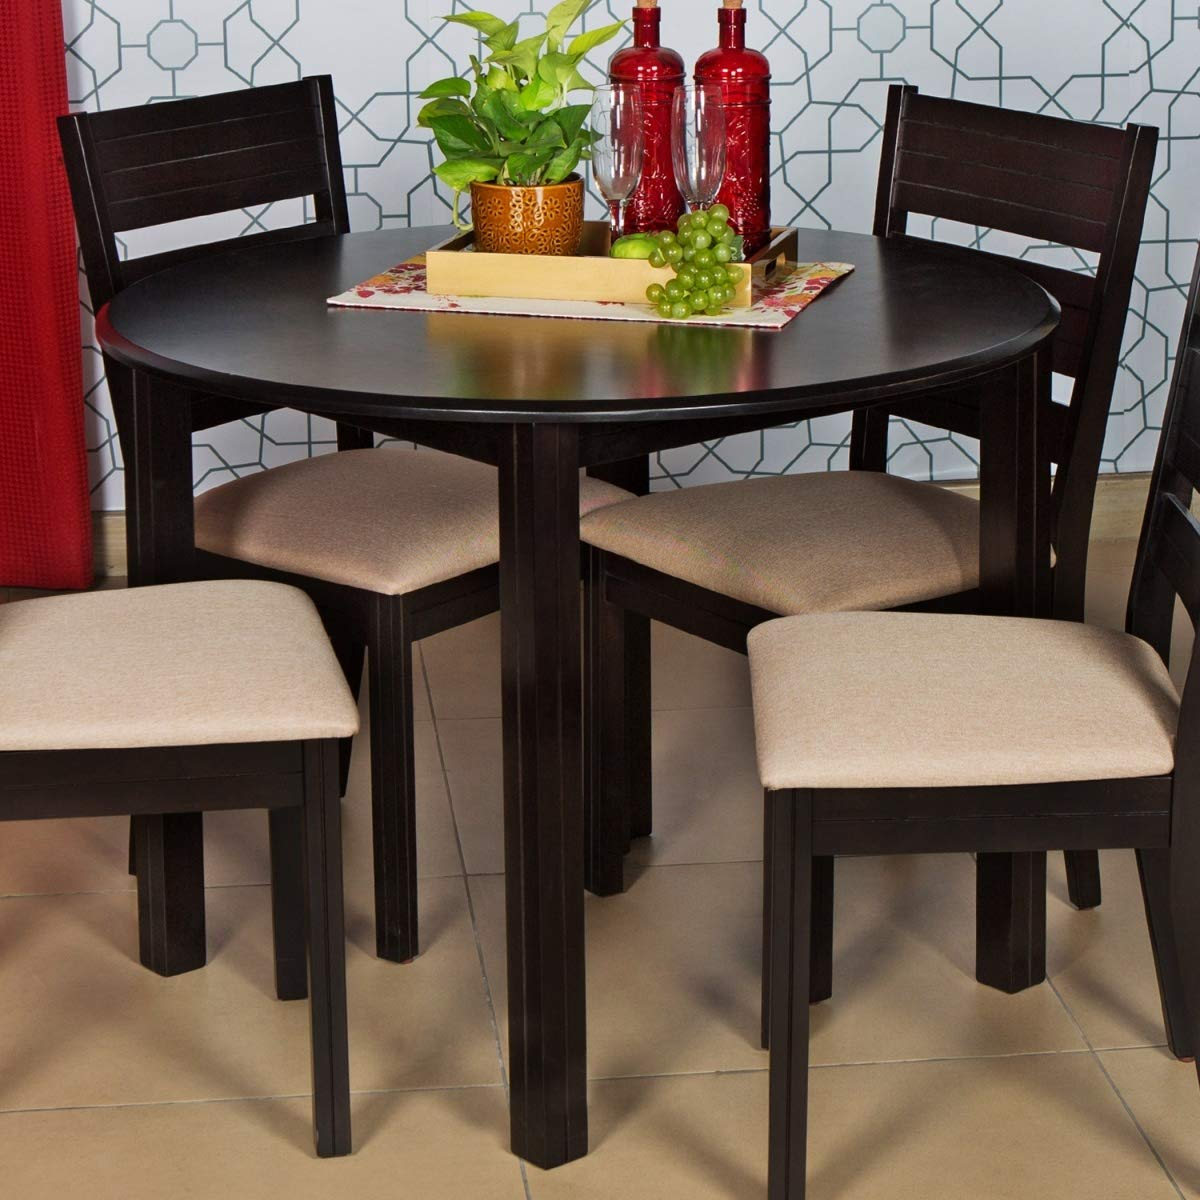 Home Centre Montoya Round Contemporary MDF Veneer Finish 9 Seater Dining  Table Without Chairs Brown